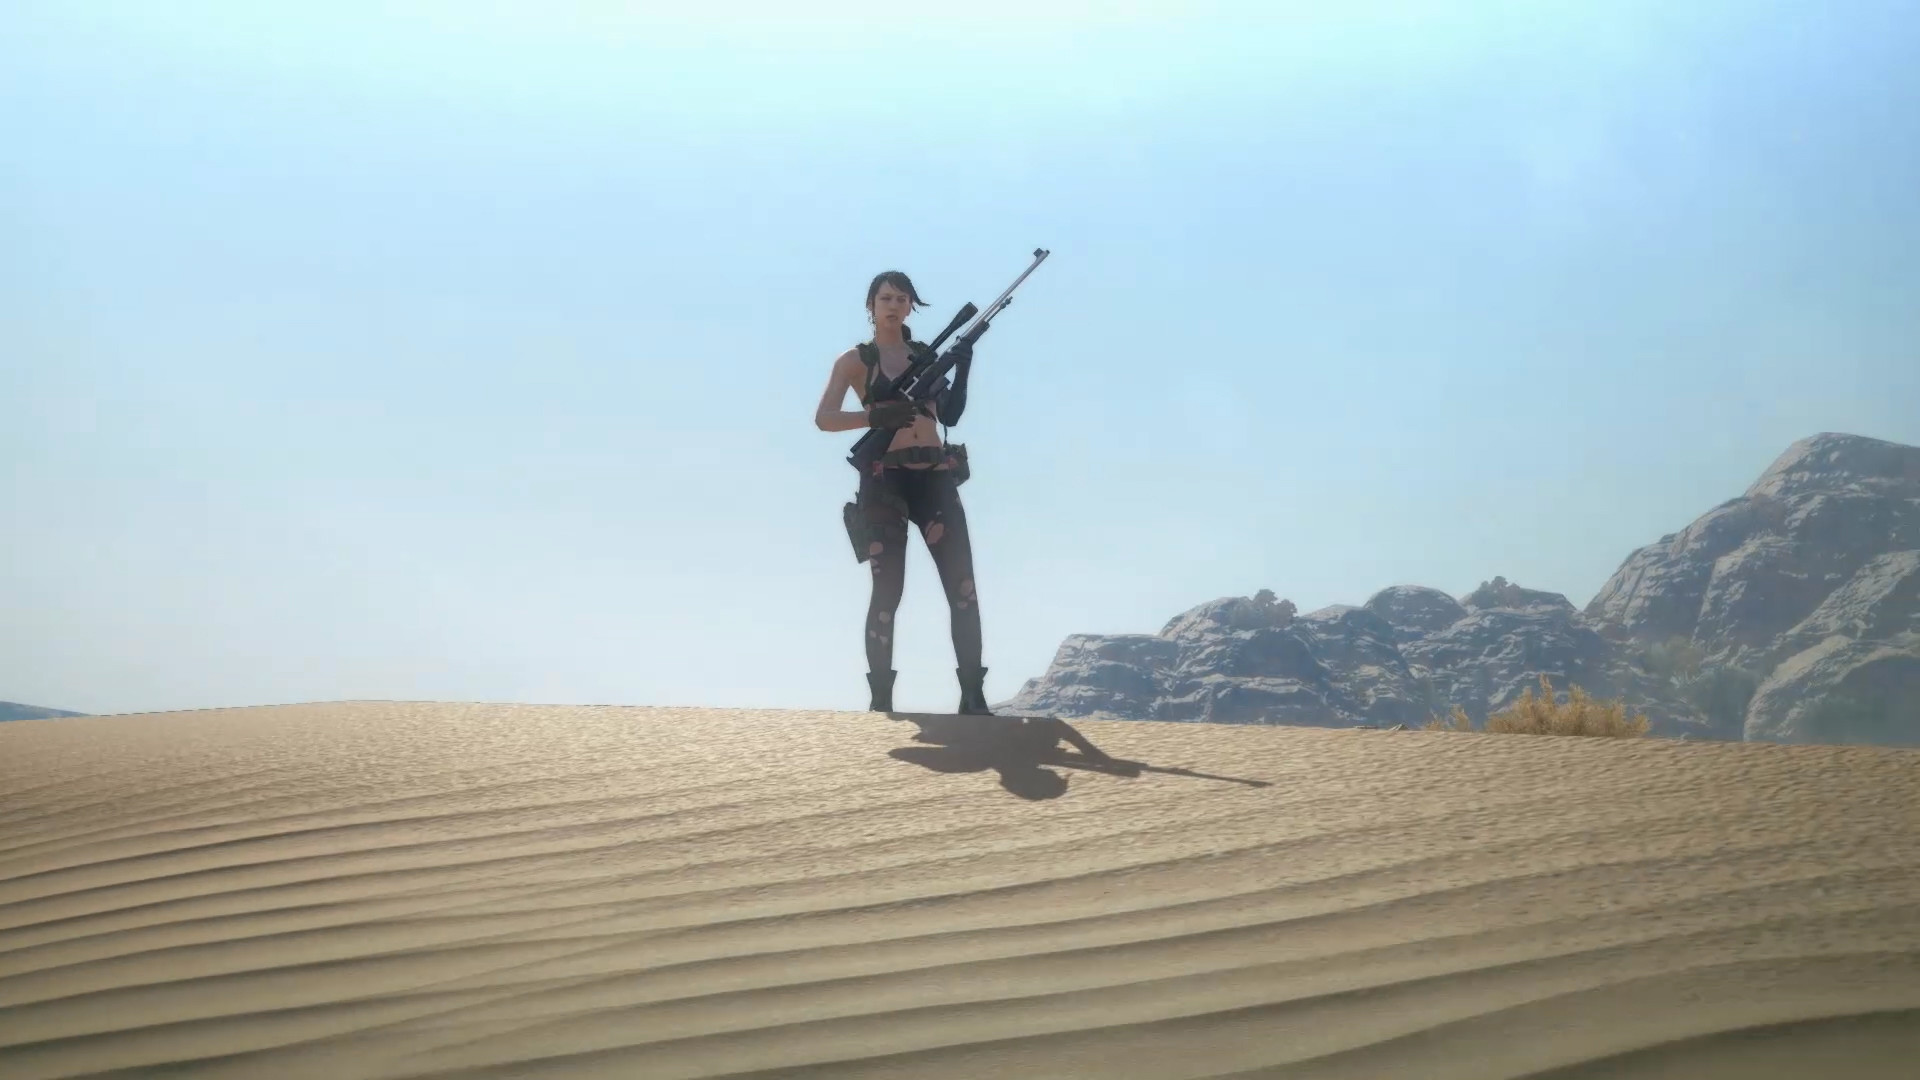 """Res: 1920x1080, Quiet, striking a pose in the desert as part of her """"Main character  standing in the distance looking cool"""" class for Mother Base."""